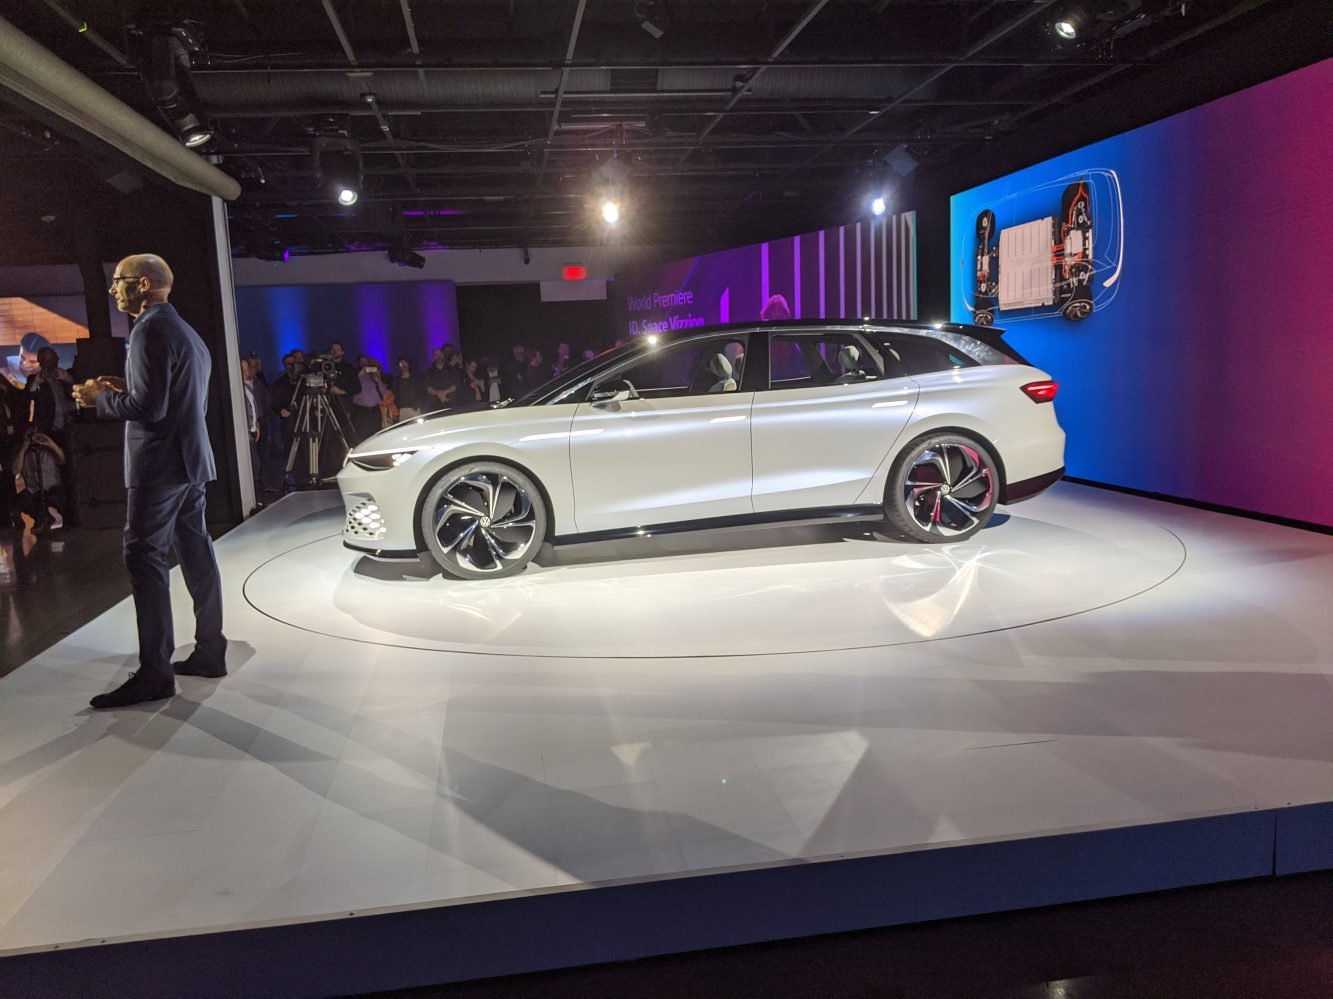 Volkswagen rolls out the 2022 ID Space Vizzion, its gazzionlith EV concept